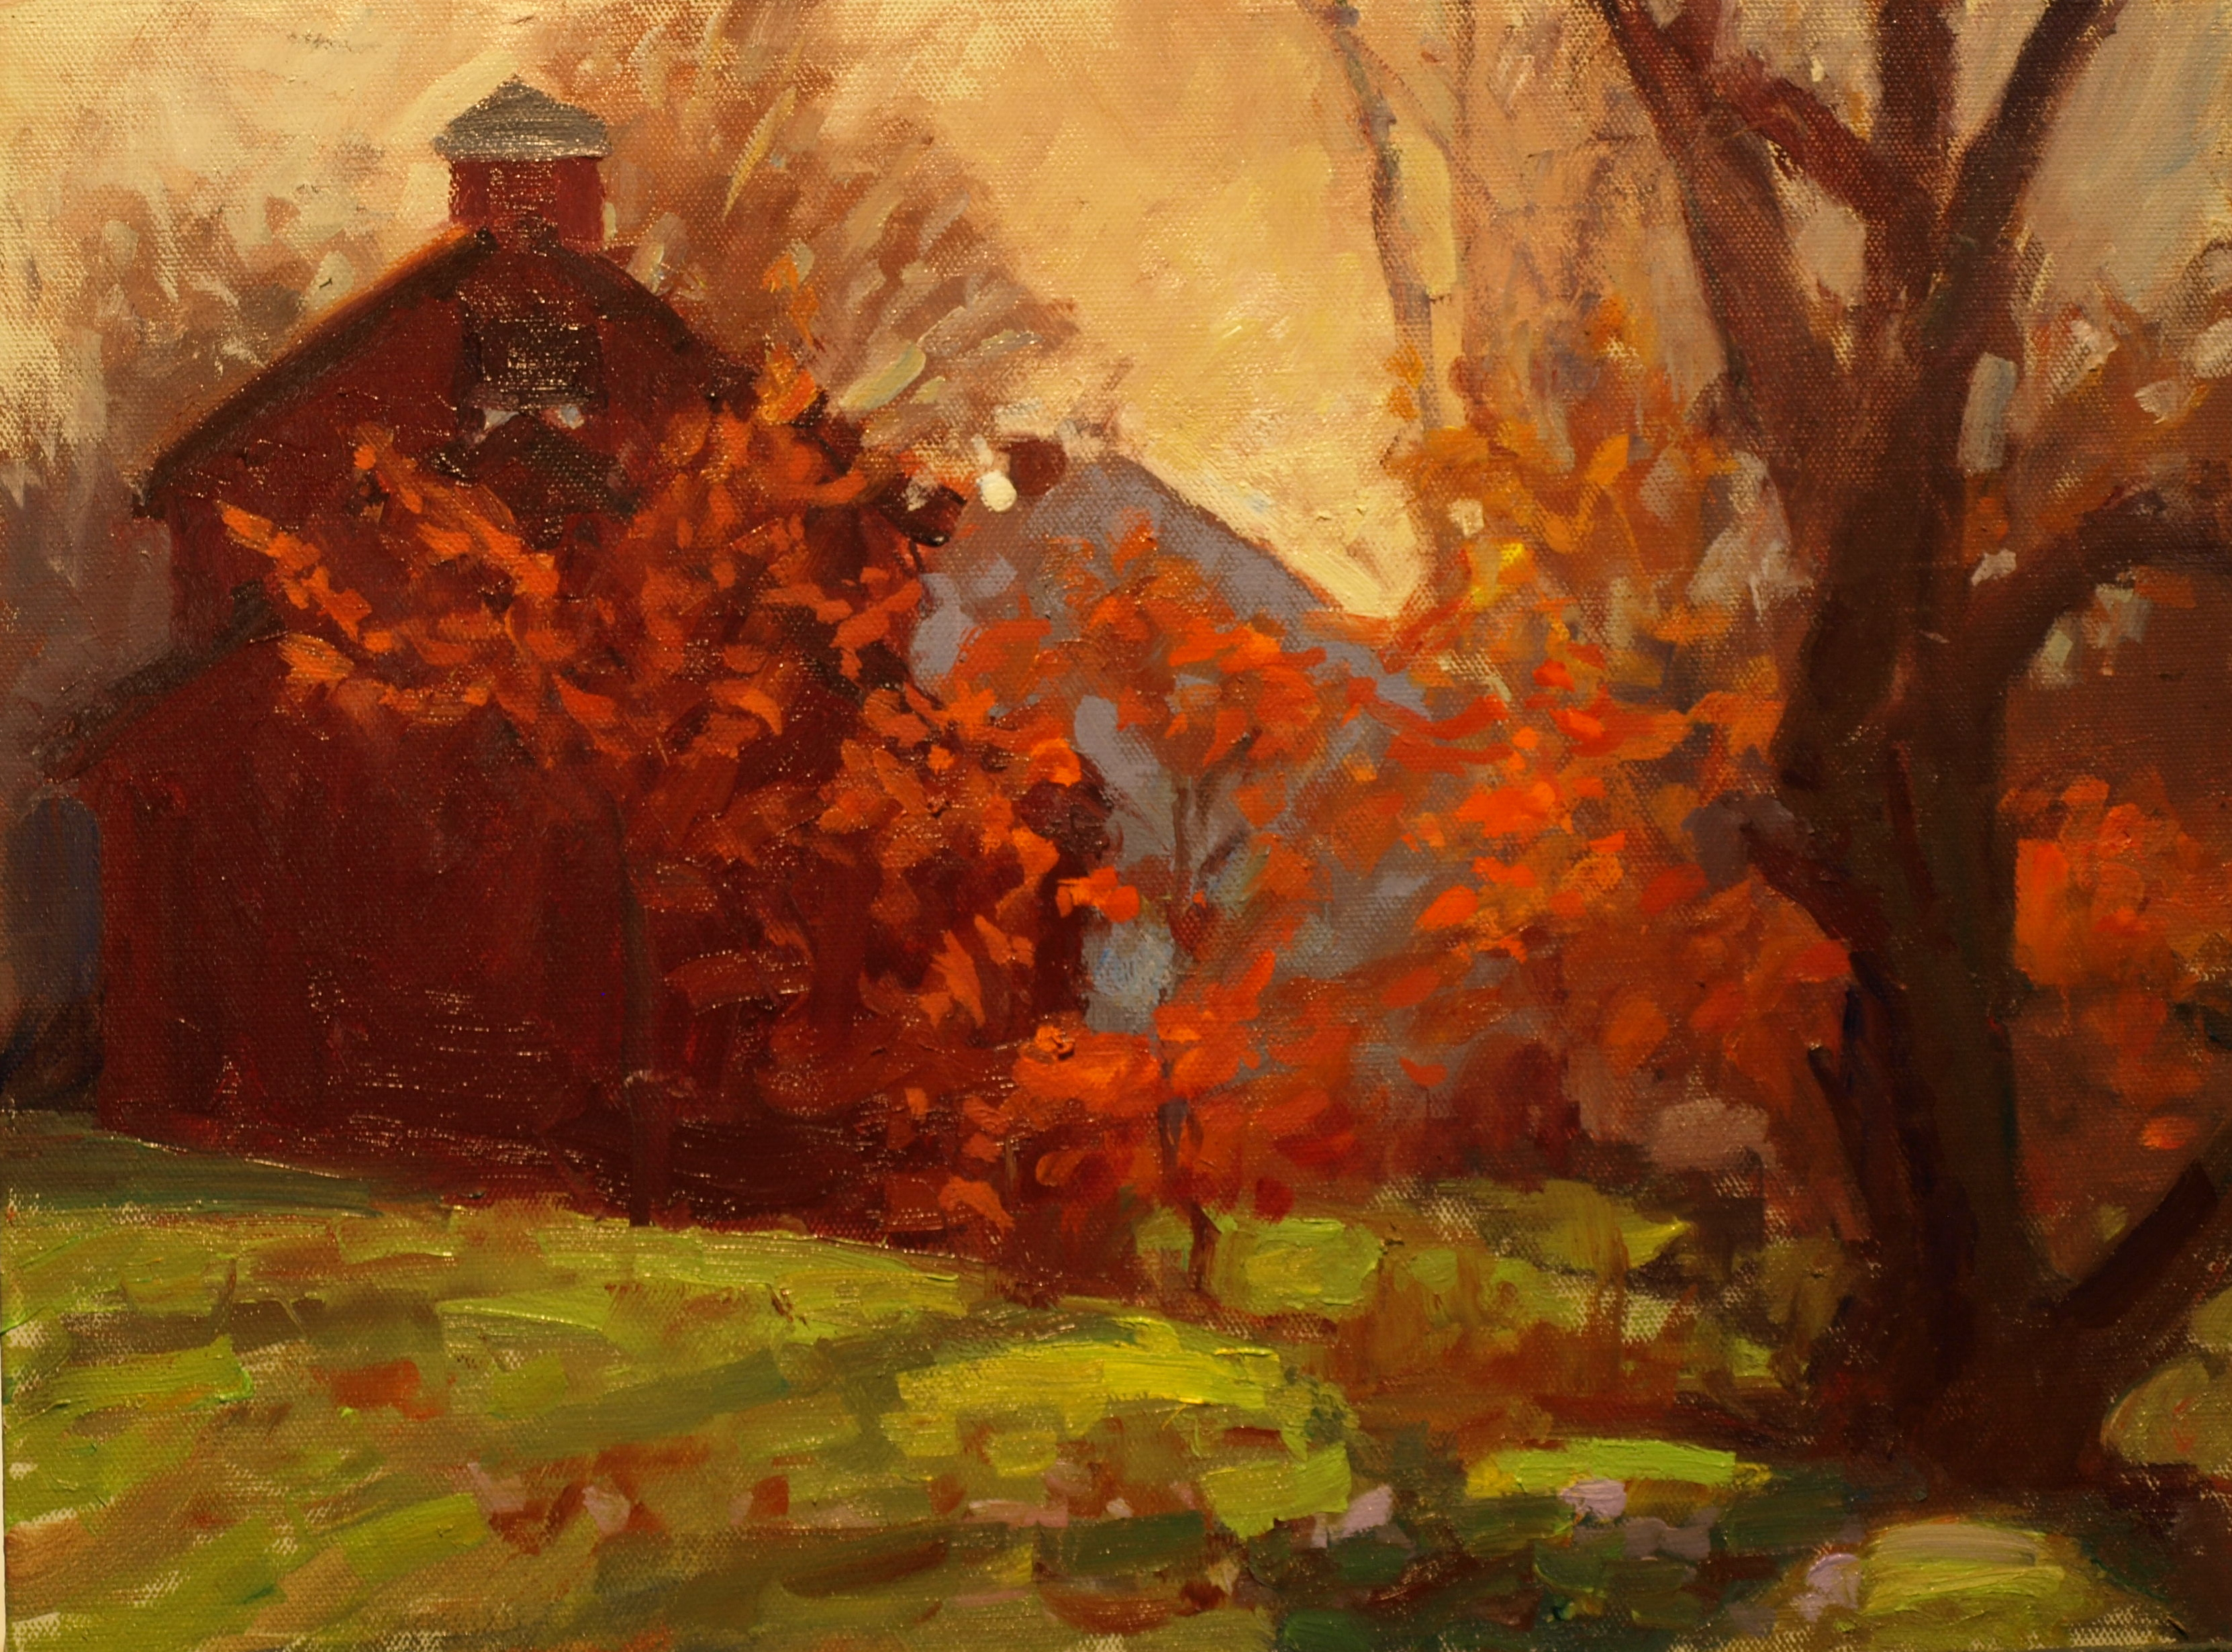 Chestnut Leaves, Oil on Panel, 12 x 16 Inches, by Susan Grisell, $300